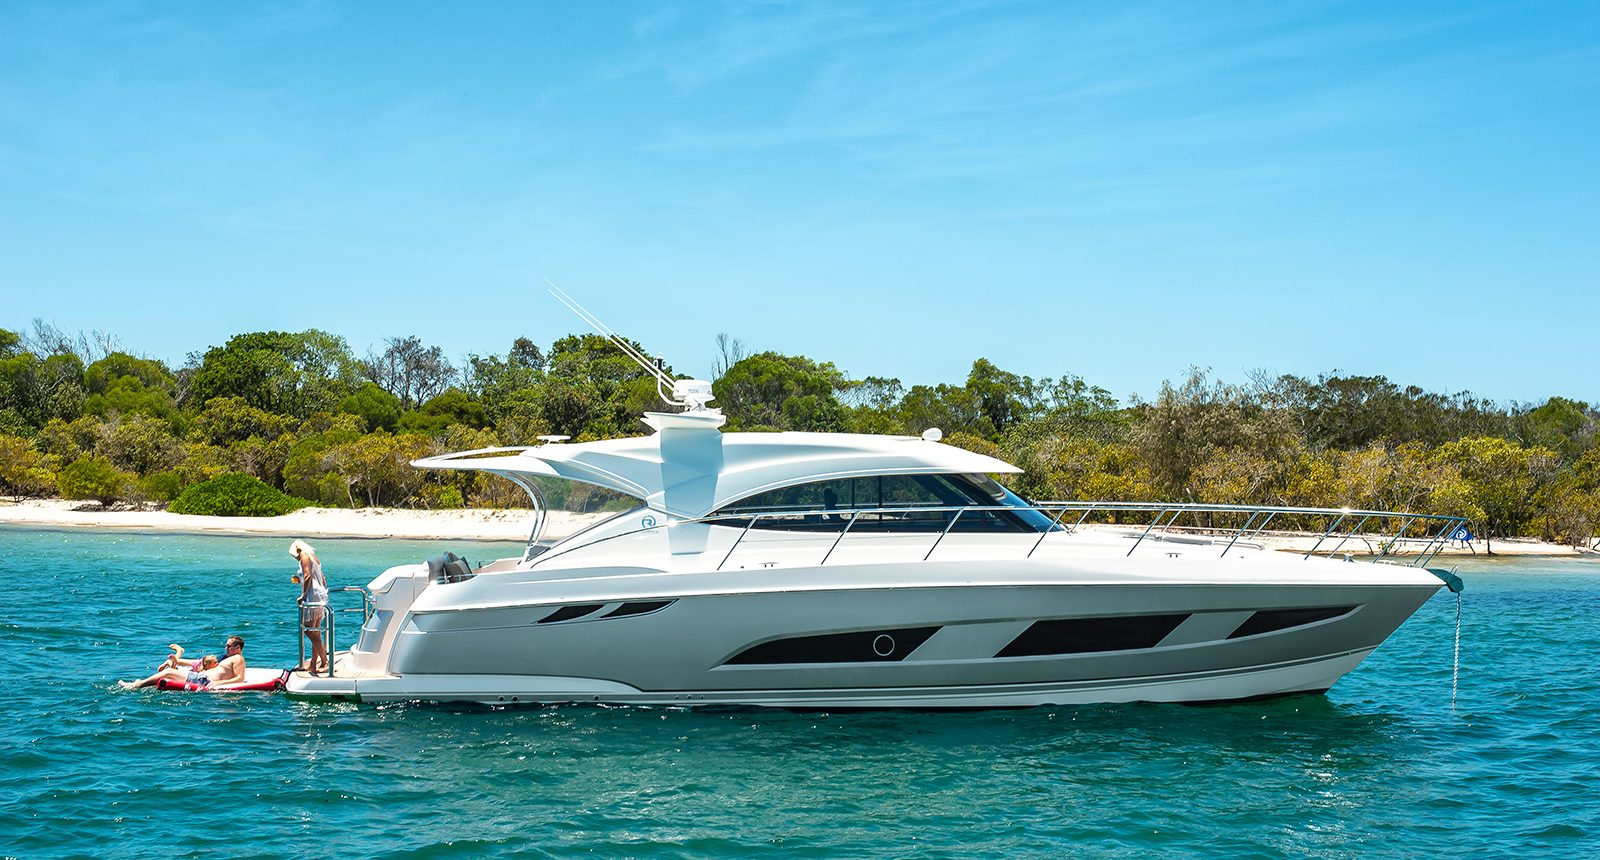 Riviera 4800 Sport Yacht For Sale SYS Yacht Sales